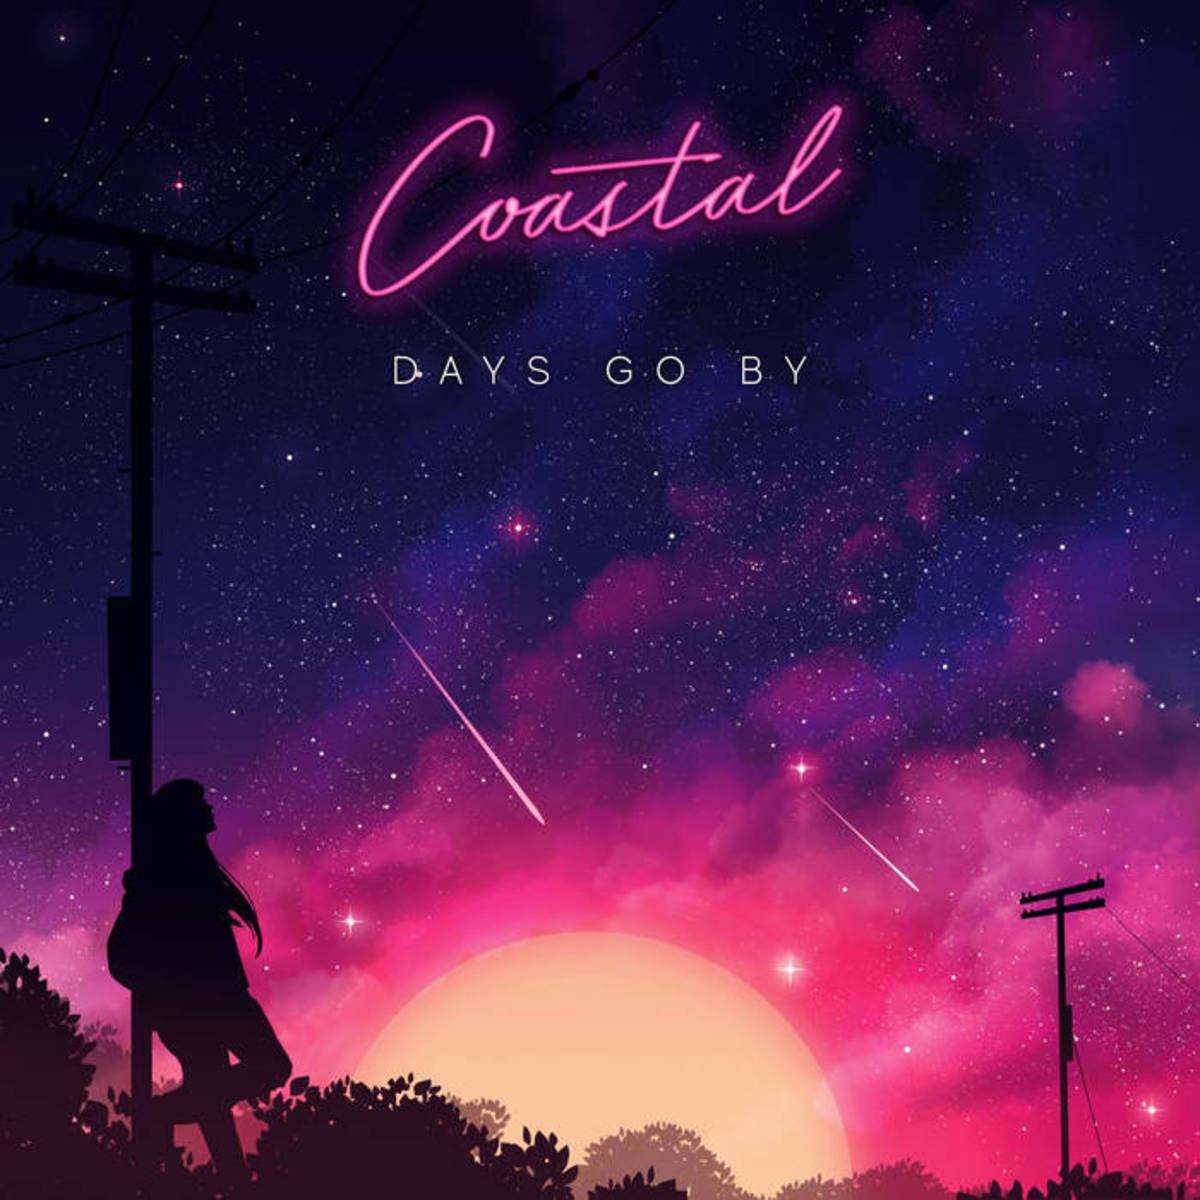 synth-single-review-days-go-by-by-coastal